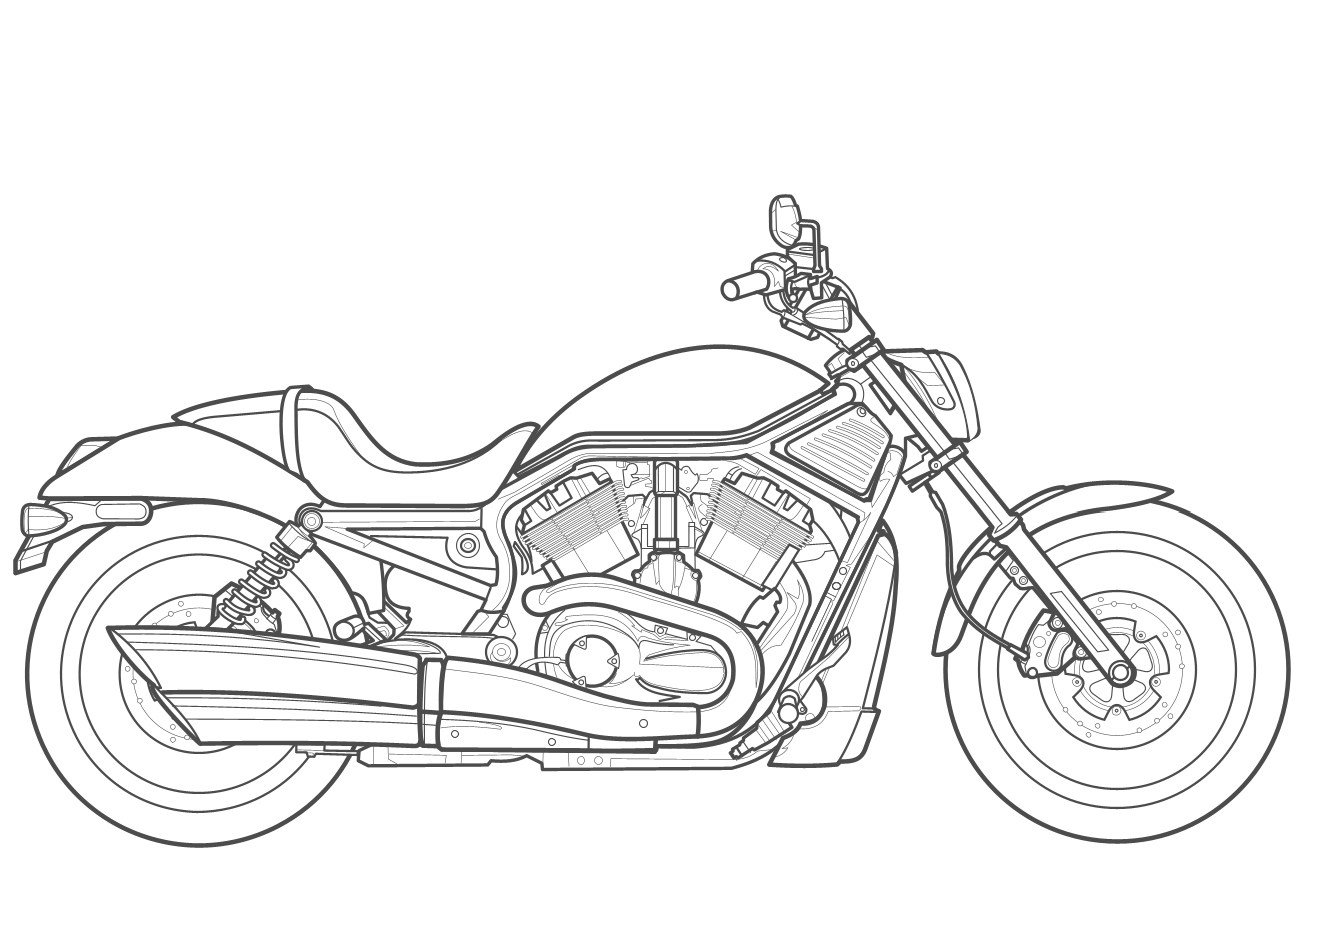 Harley Davidson Drawing Outline at PaintingValley.com